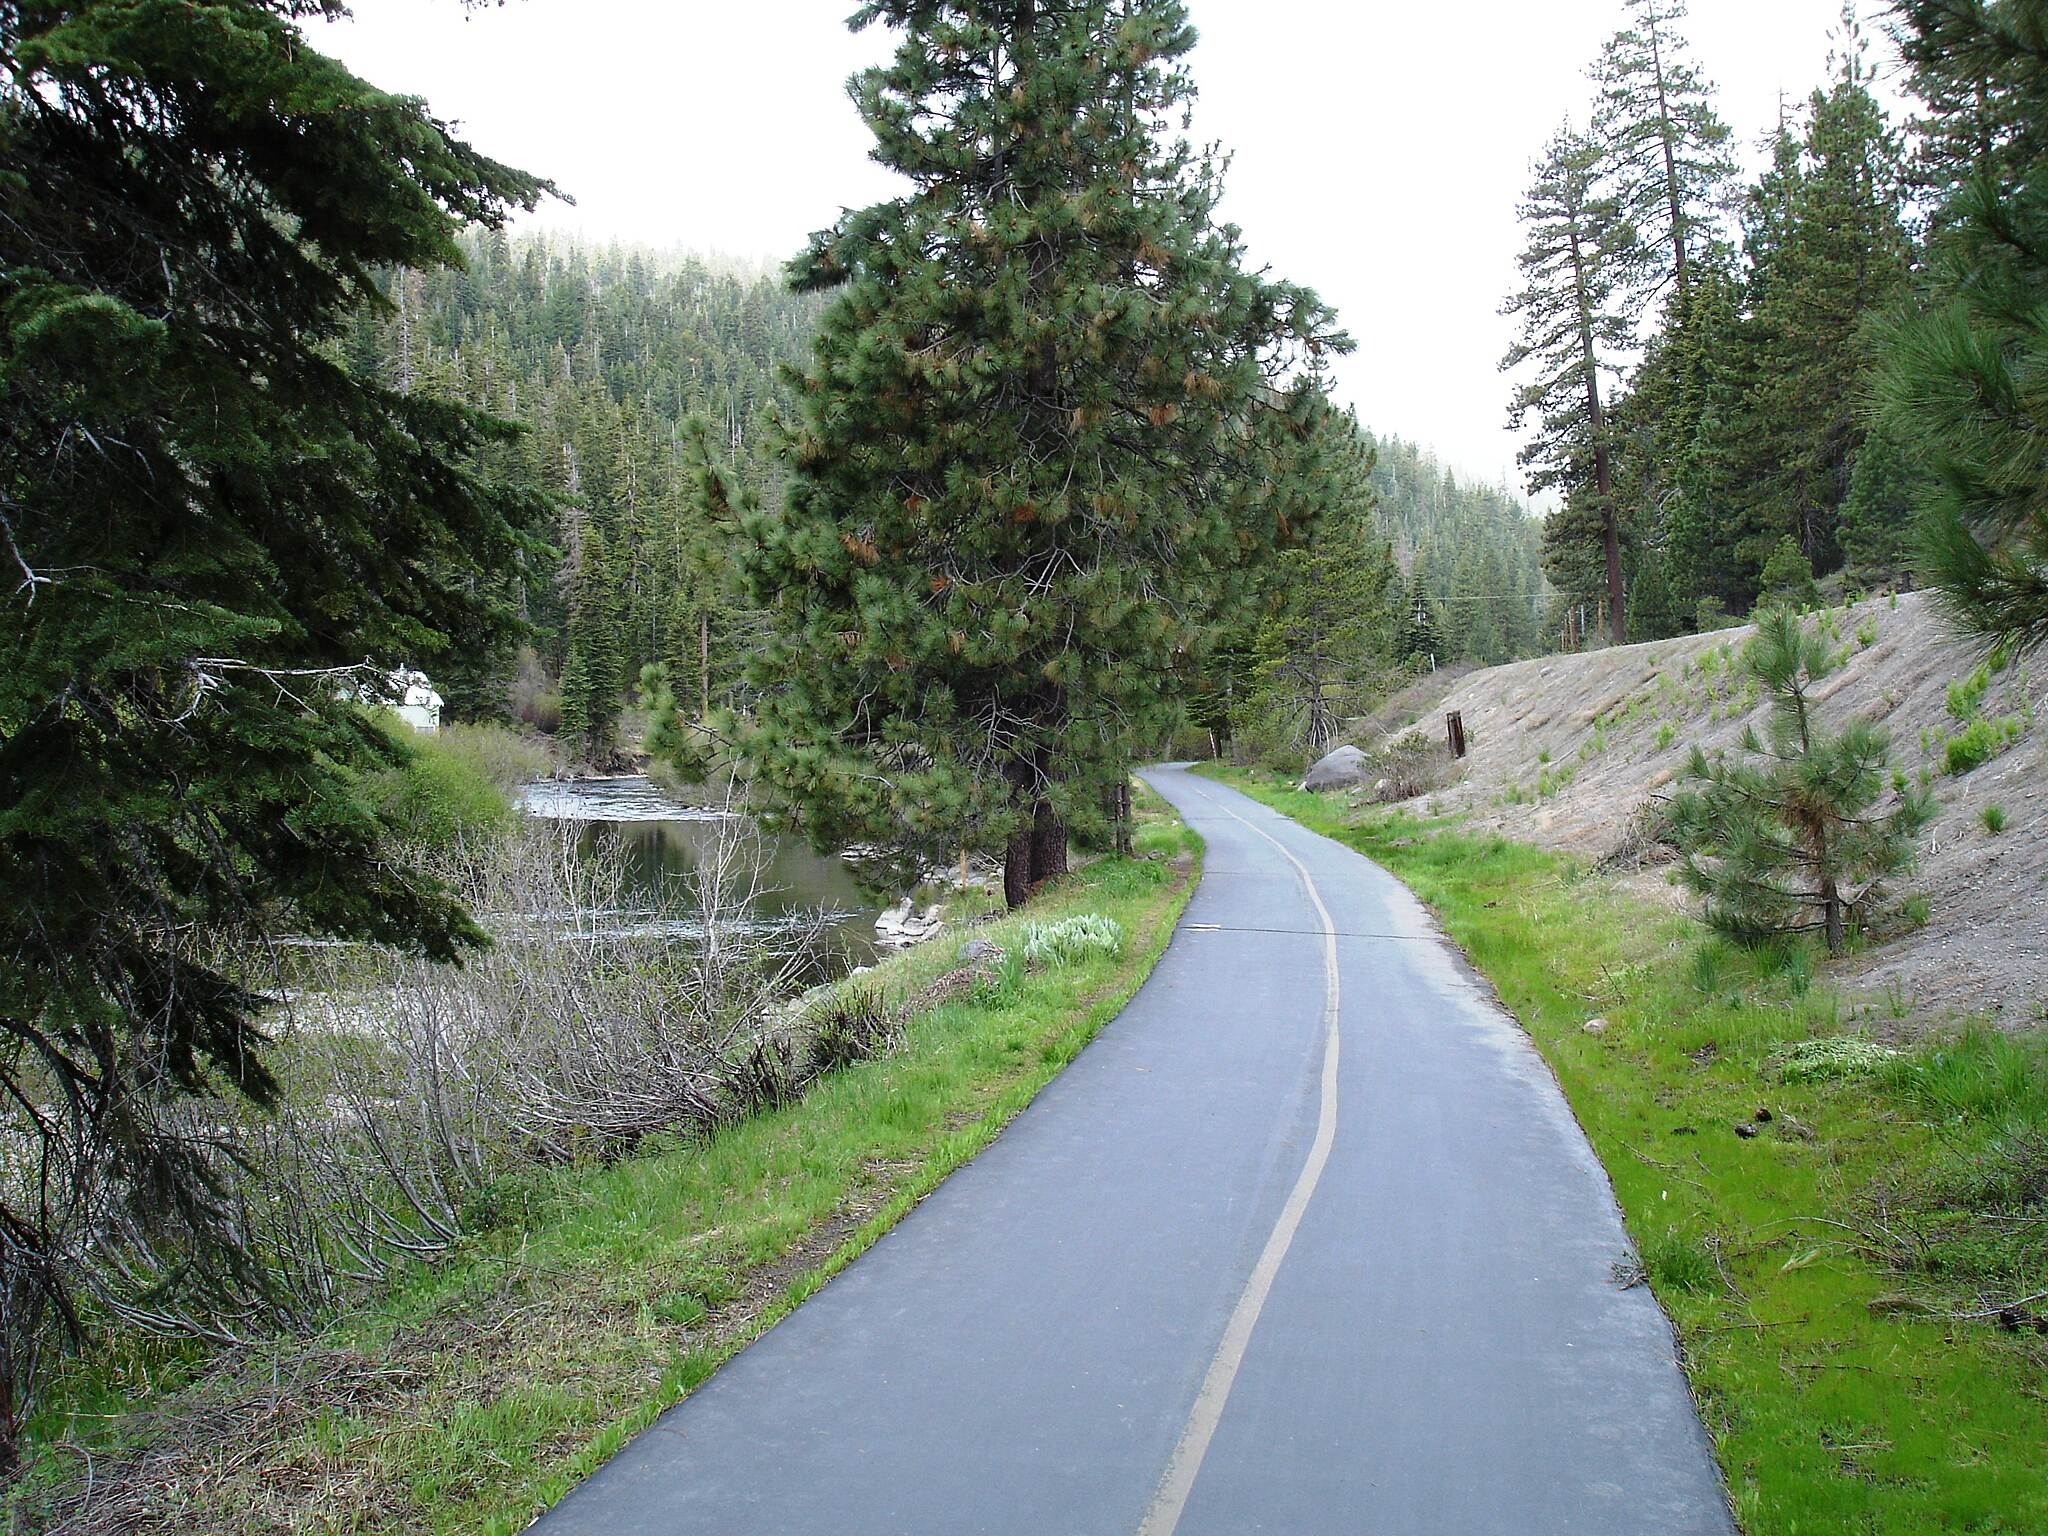 Tahoe Trailways Bike Path   The Truckee River Bike Trail is part of a 19-mile paved trail network along the western and northern shores of Lake Tahoe.